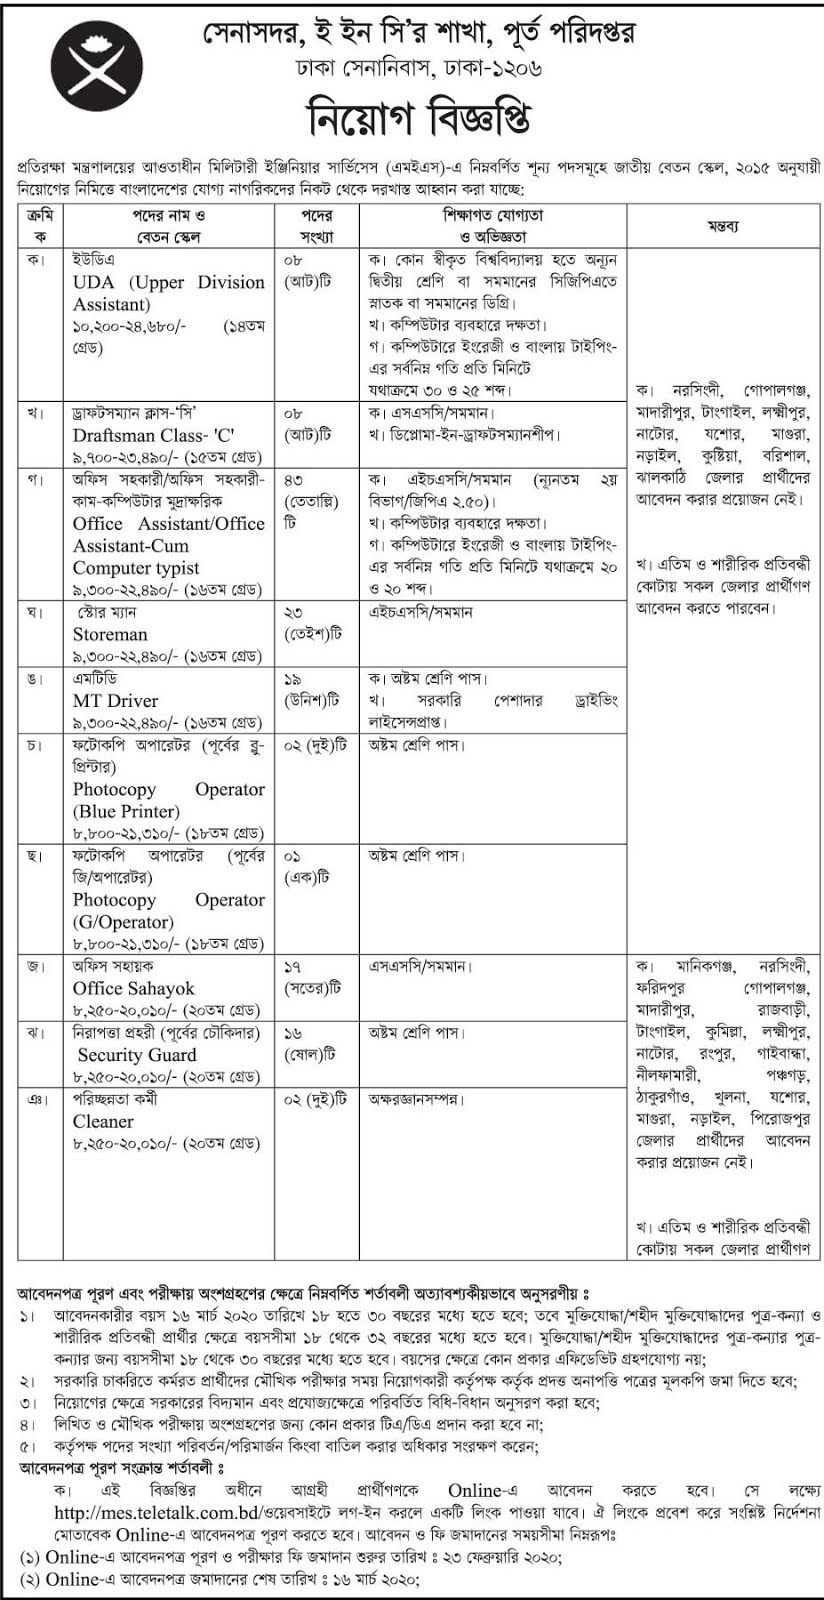 MILITARY ENGINEER SERVICES Job Circular 2020